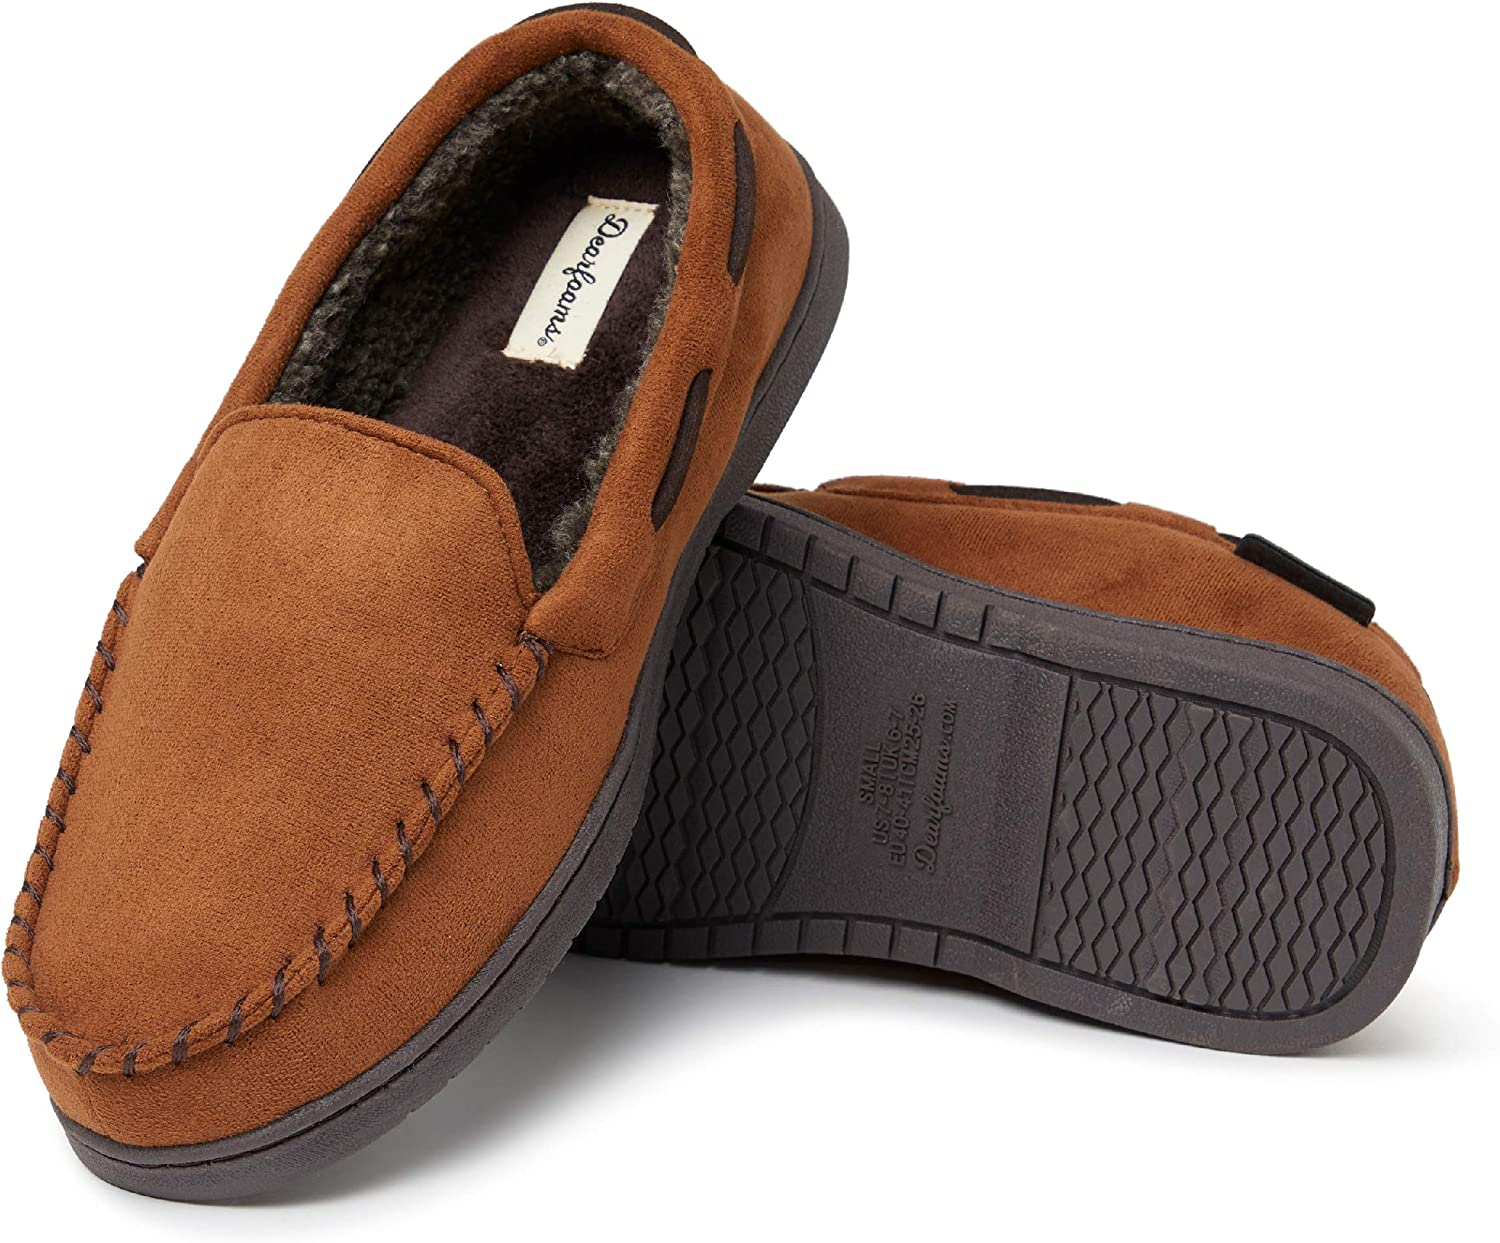 Dearfoams Men's Microsuede Moccasin with Whipstitch Slipper, Chestnut, Small